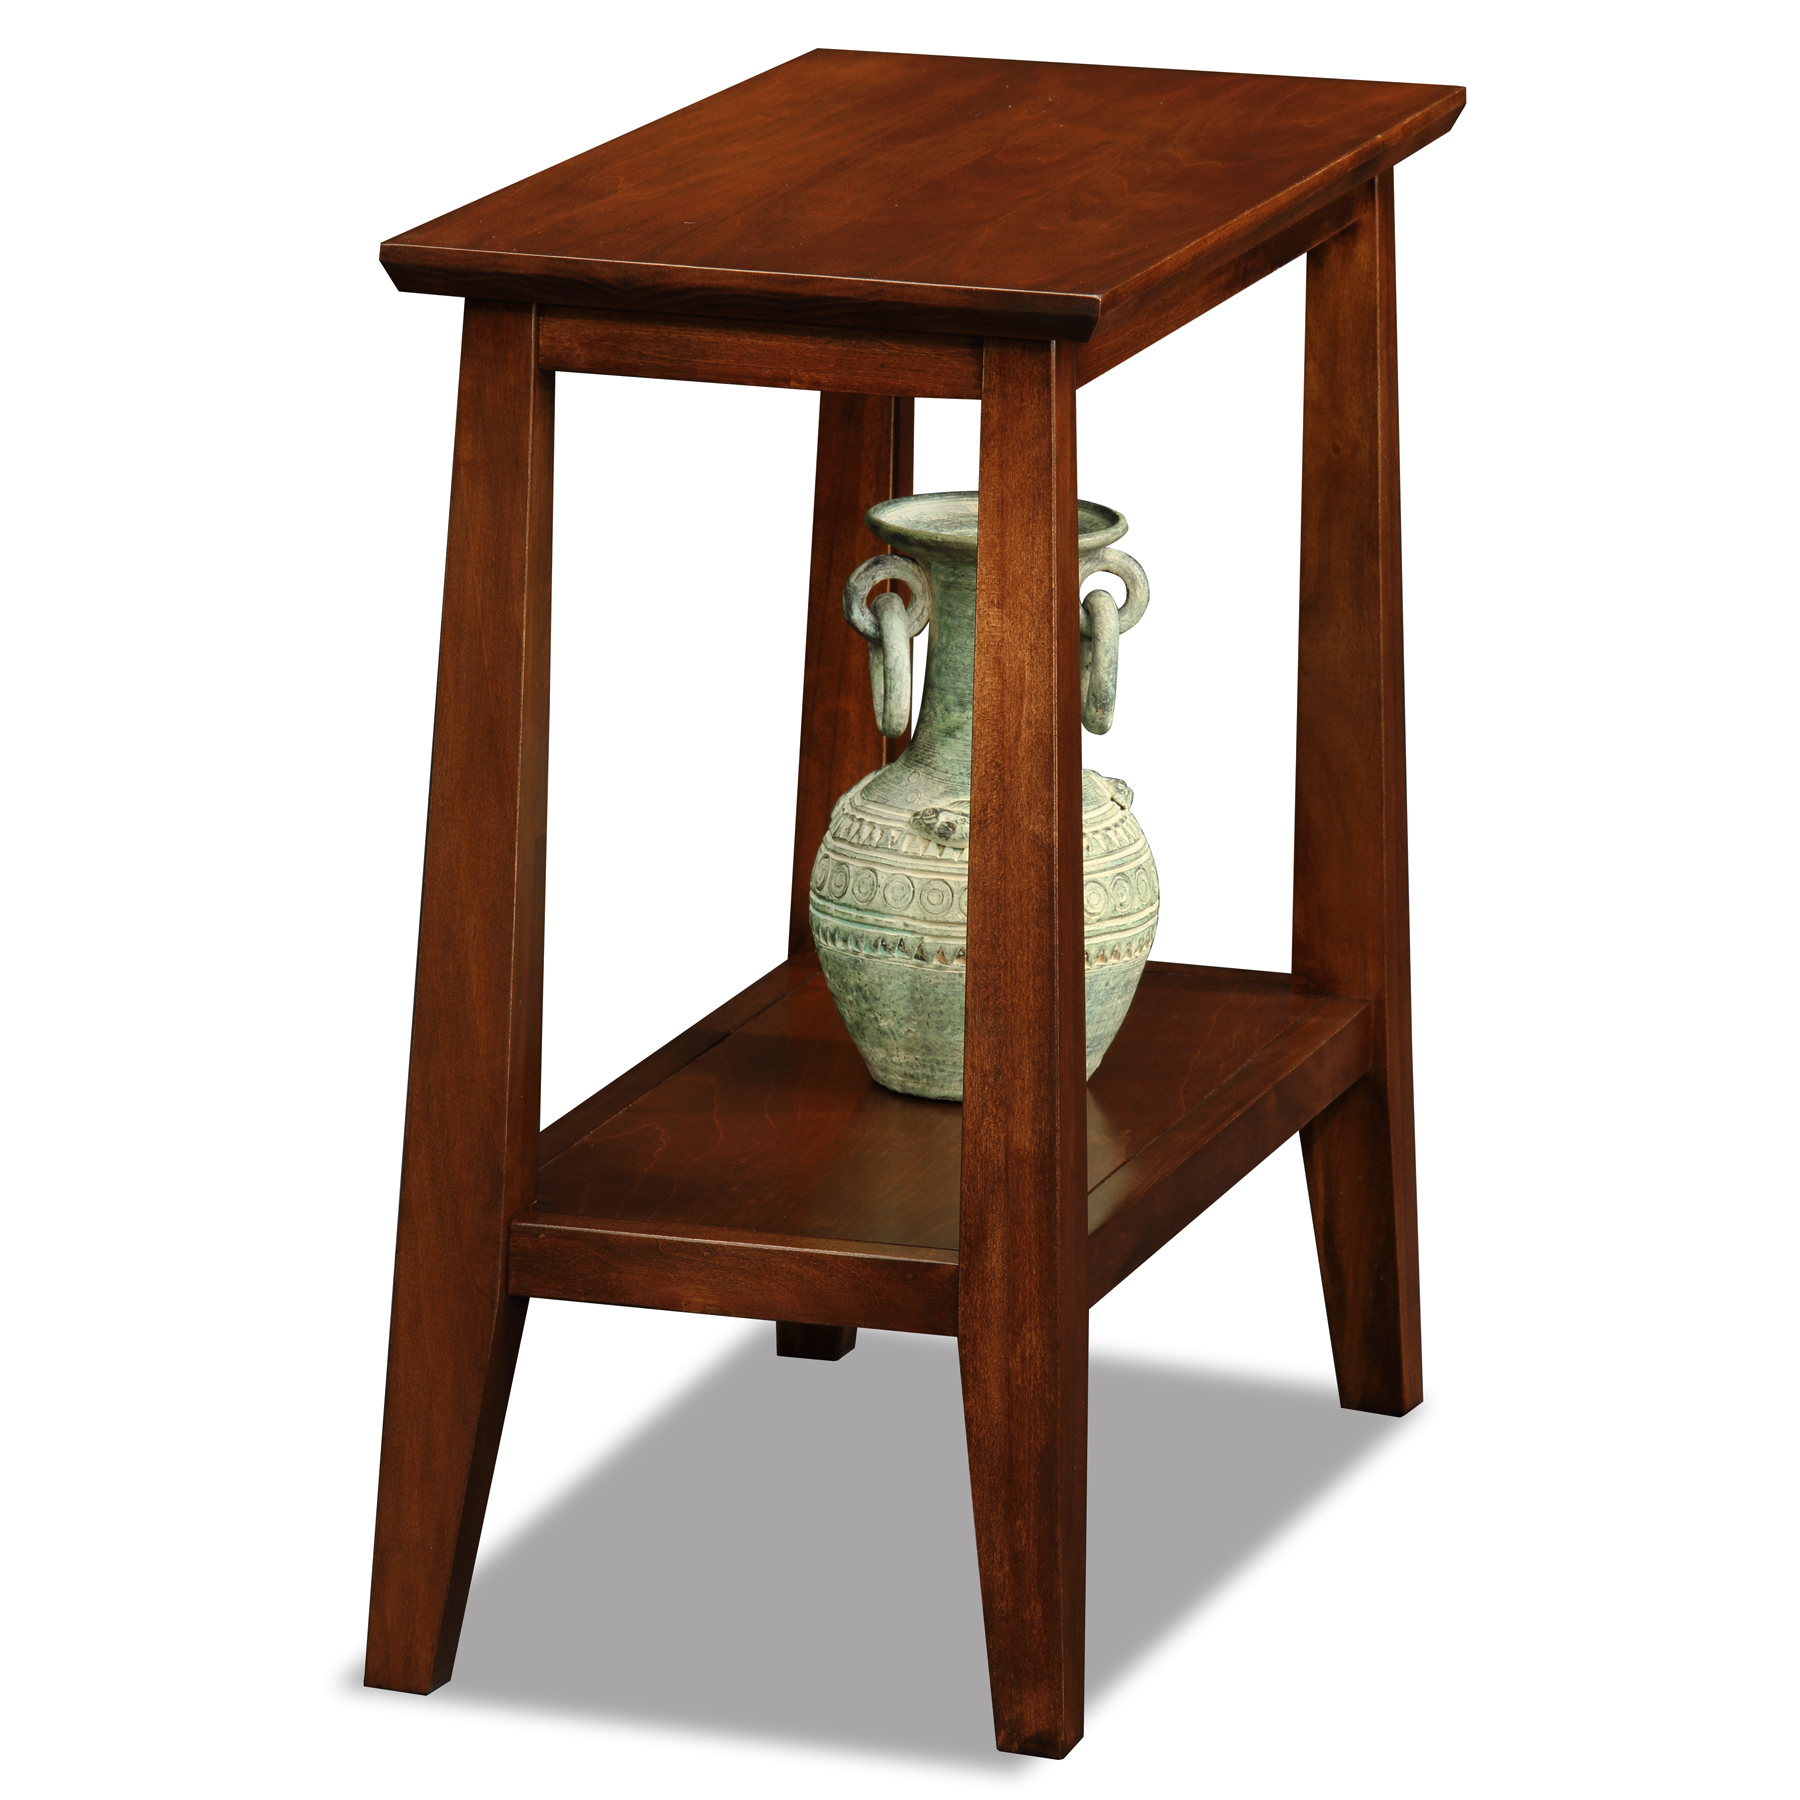 Small Narrow End Table Leick Delton Narrow Chairside Solid Wood End Table